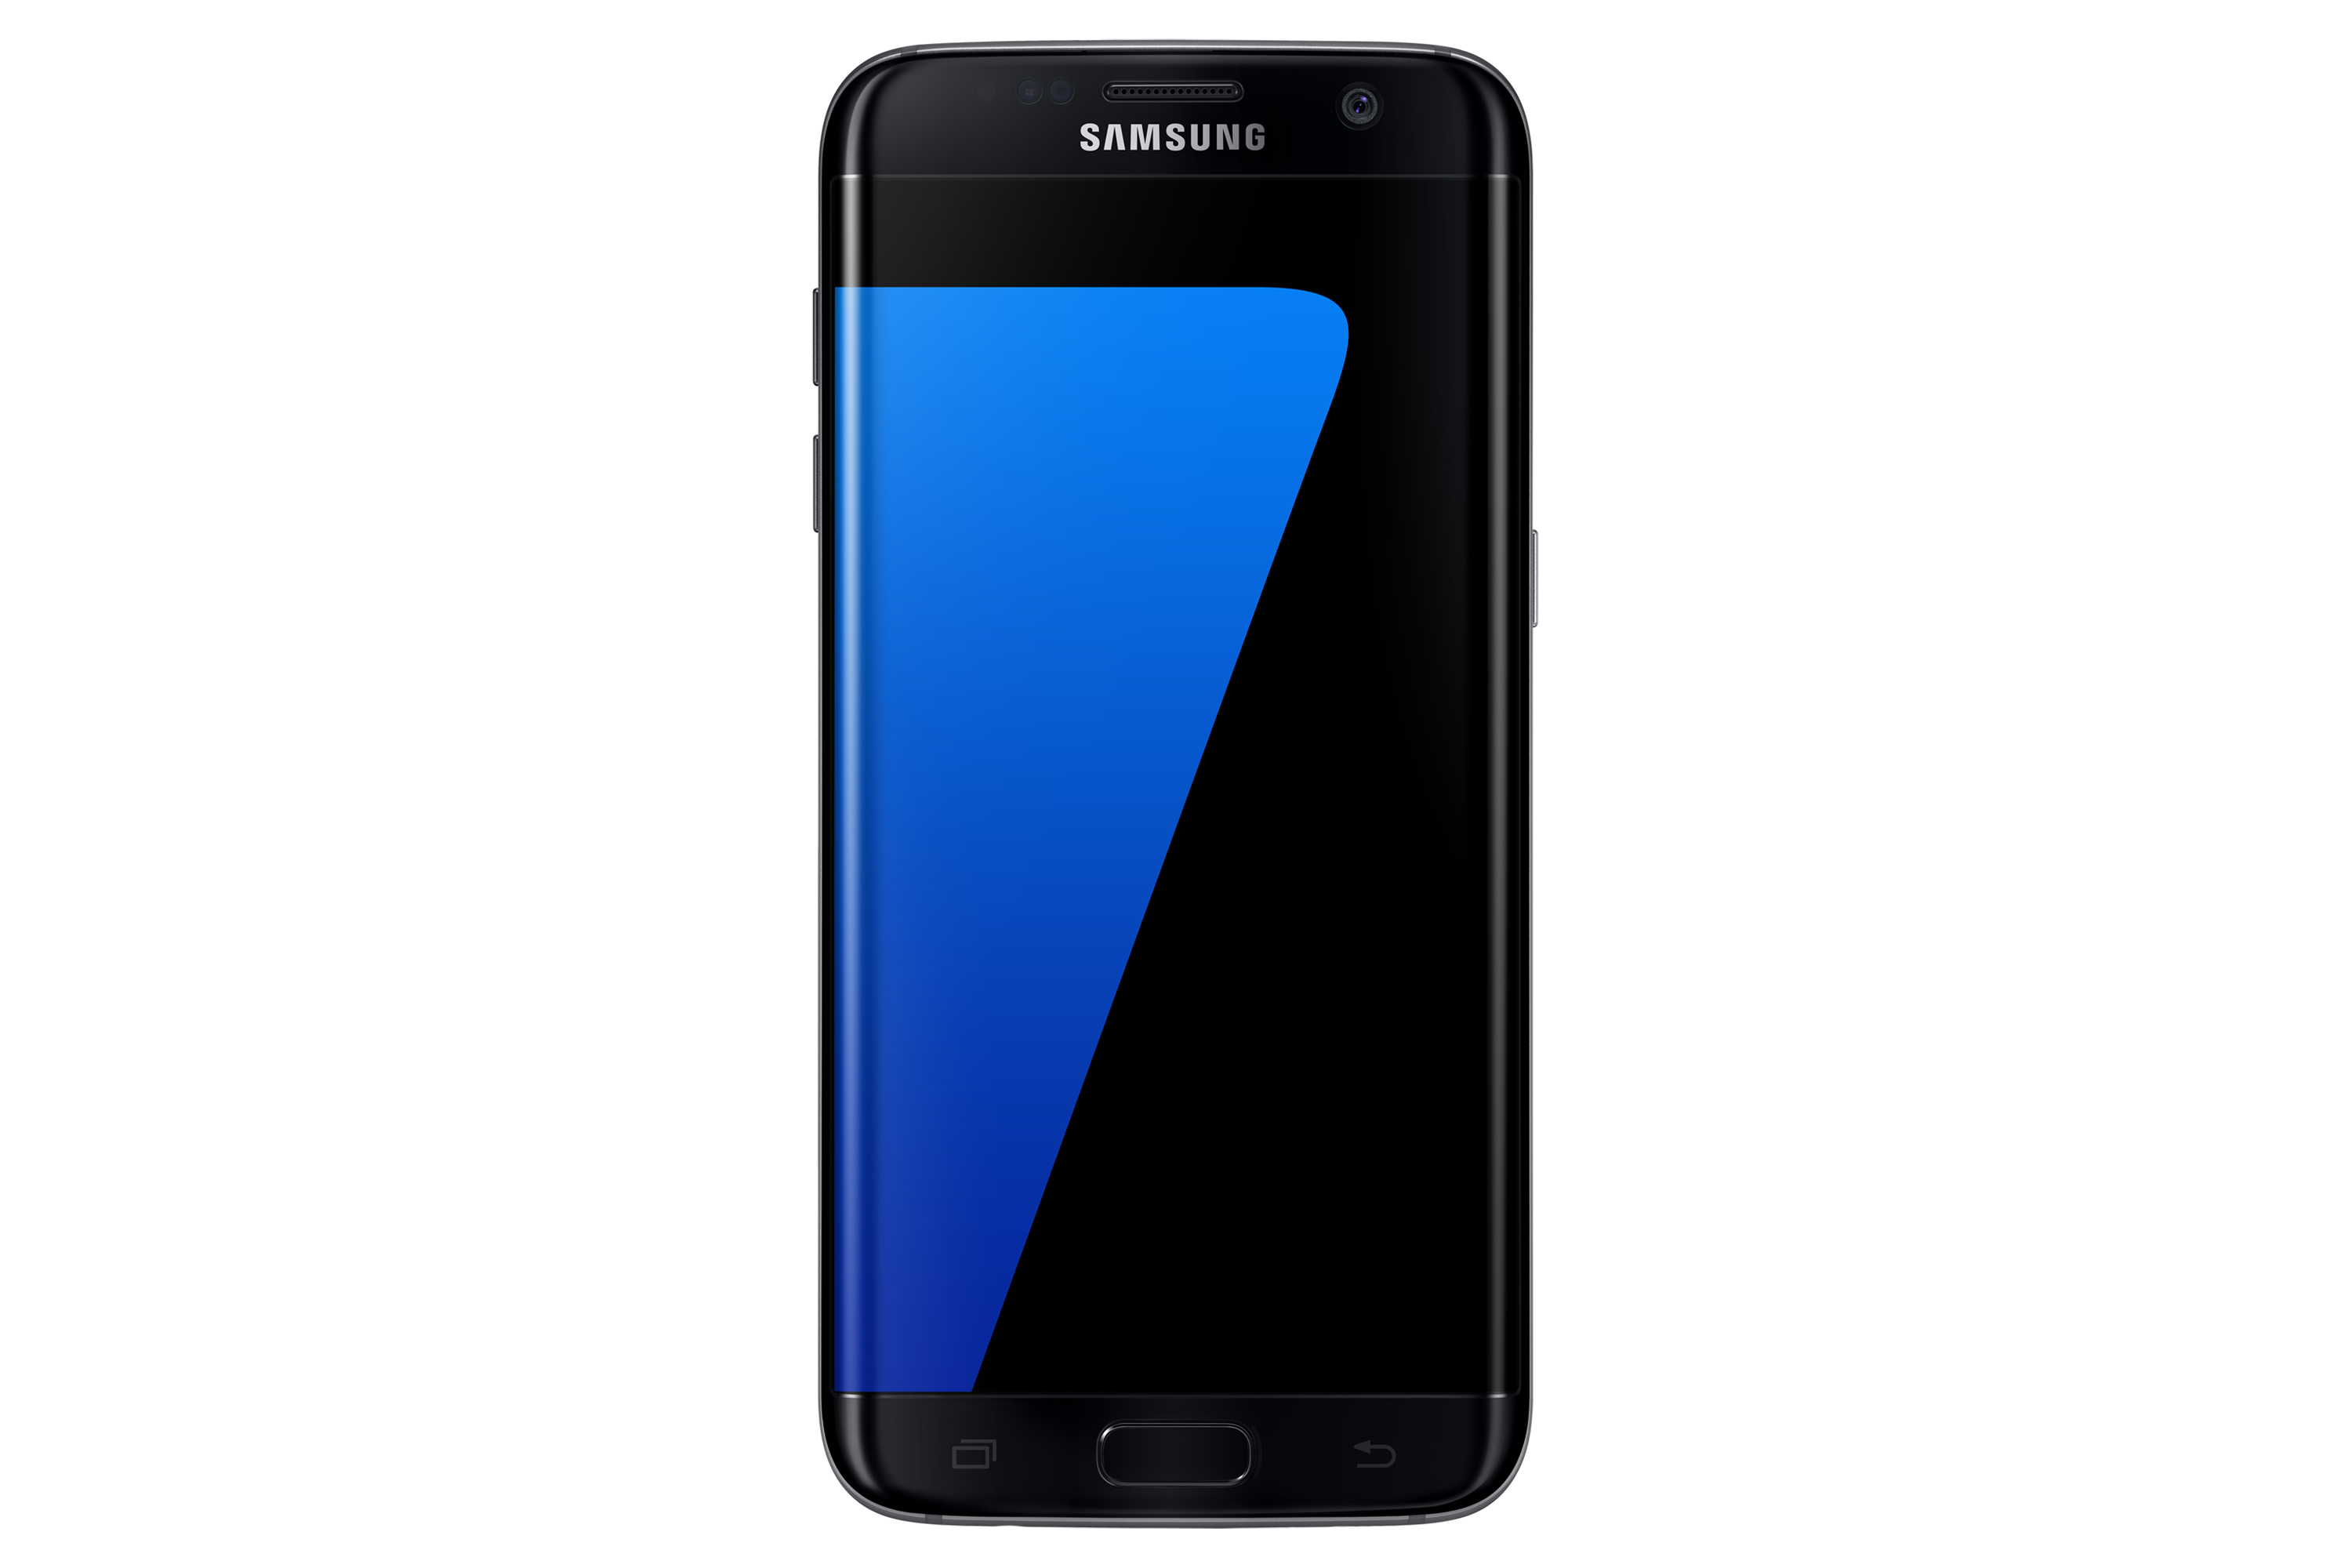 samsung galaxy s7 and galaxy s7 edge specifications and images. Black Bedroom Furniture Sets. Home Design Ideas